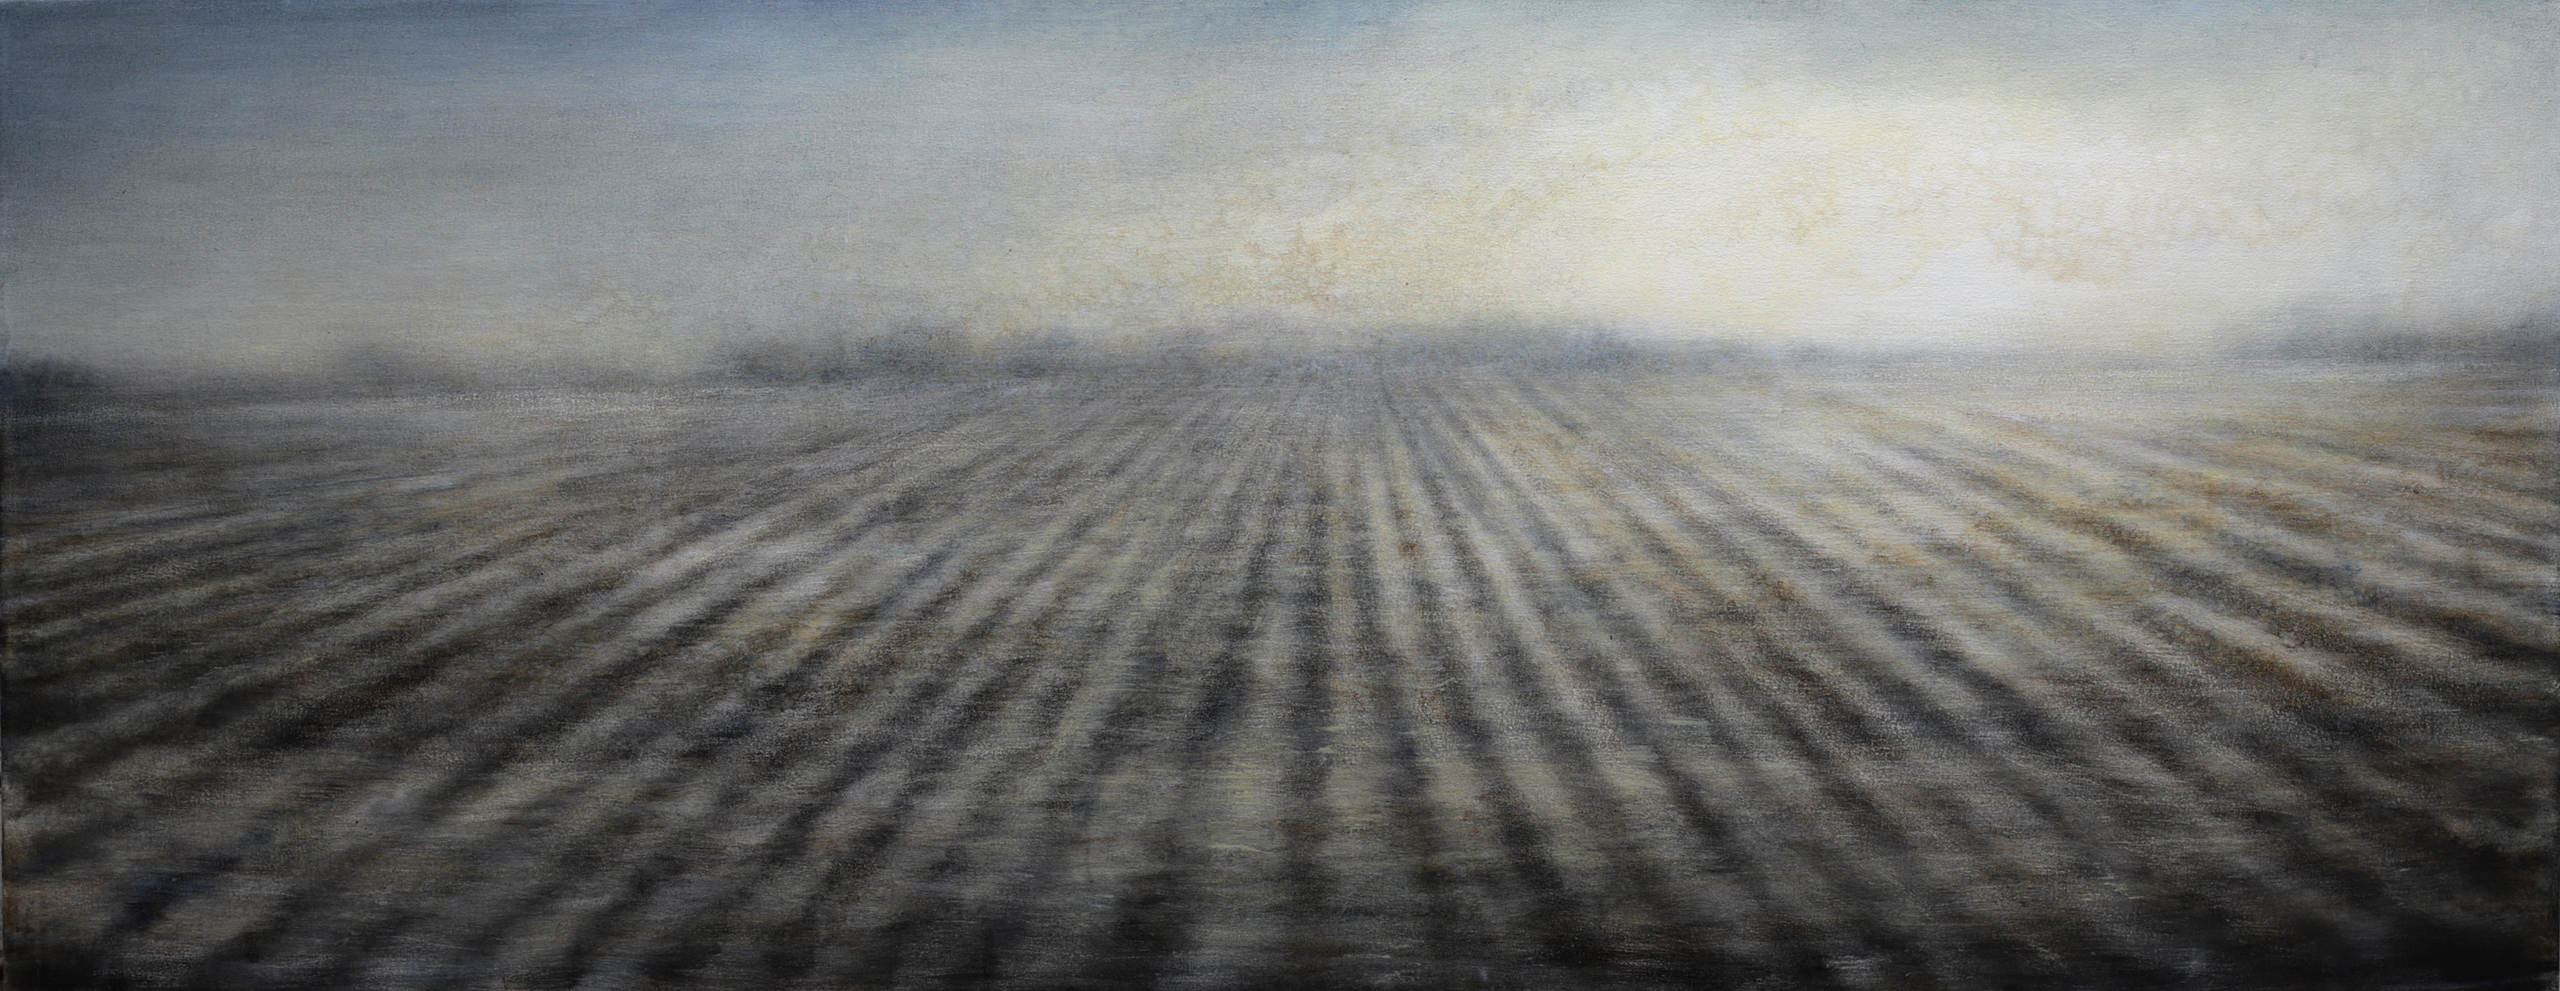 "Maya Kulenovic: WIND PLAIN, 2018, oil on canvas, 30.5"" x 74"" (76cm x 188cm). 'Land' Series."